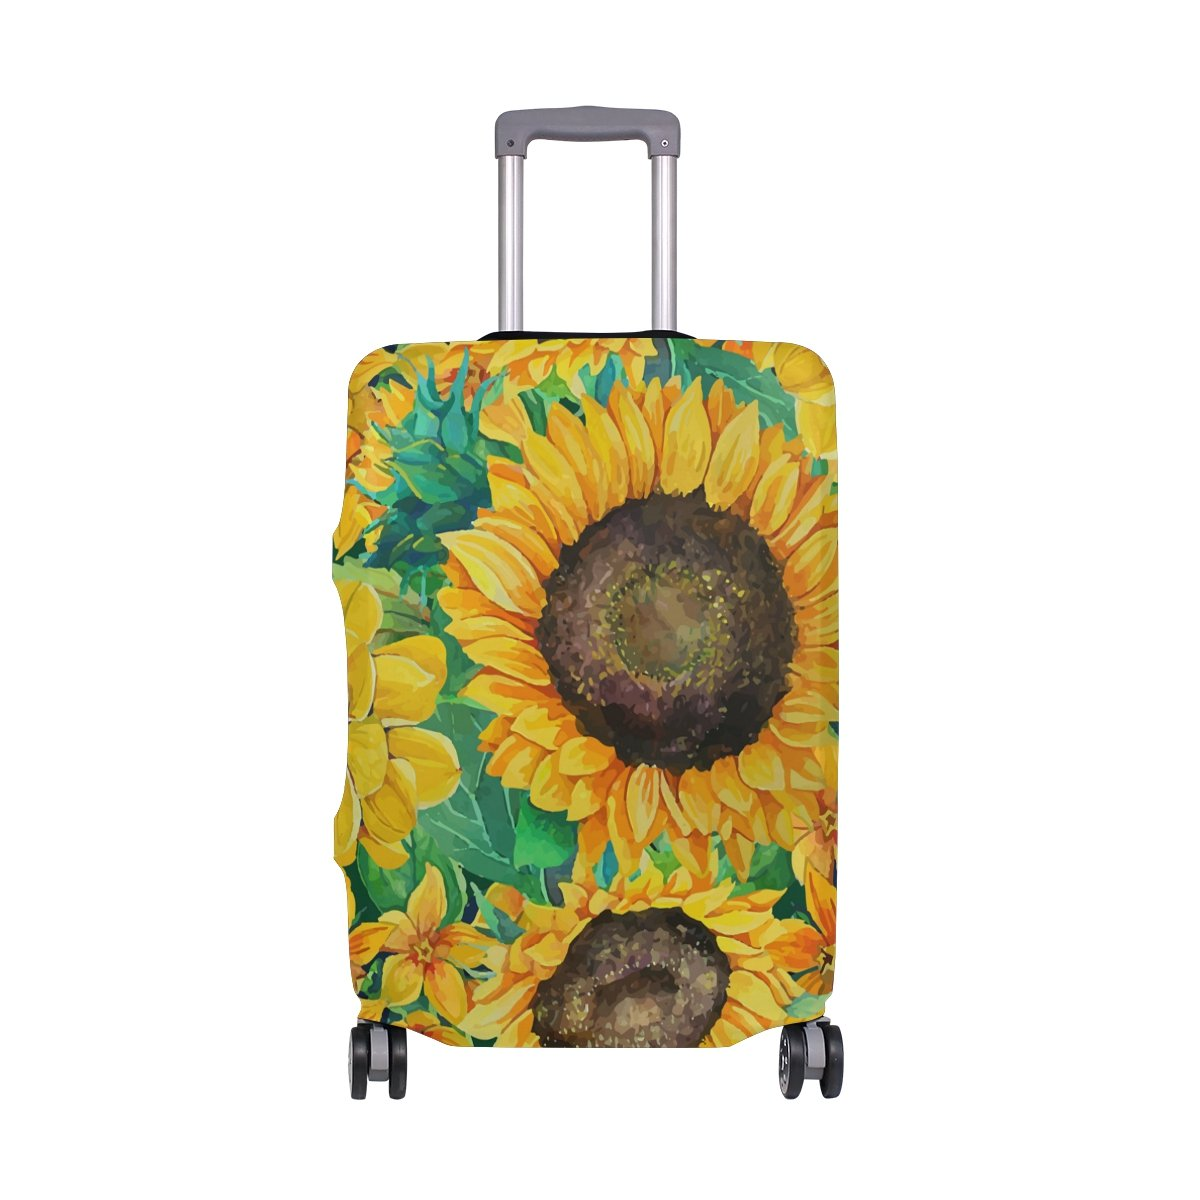 Vintage Sunflowers Floral Oil Painting Summer Suitcase Luggage Cover Protector for Travel Kids Men Women